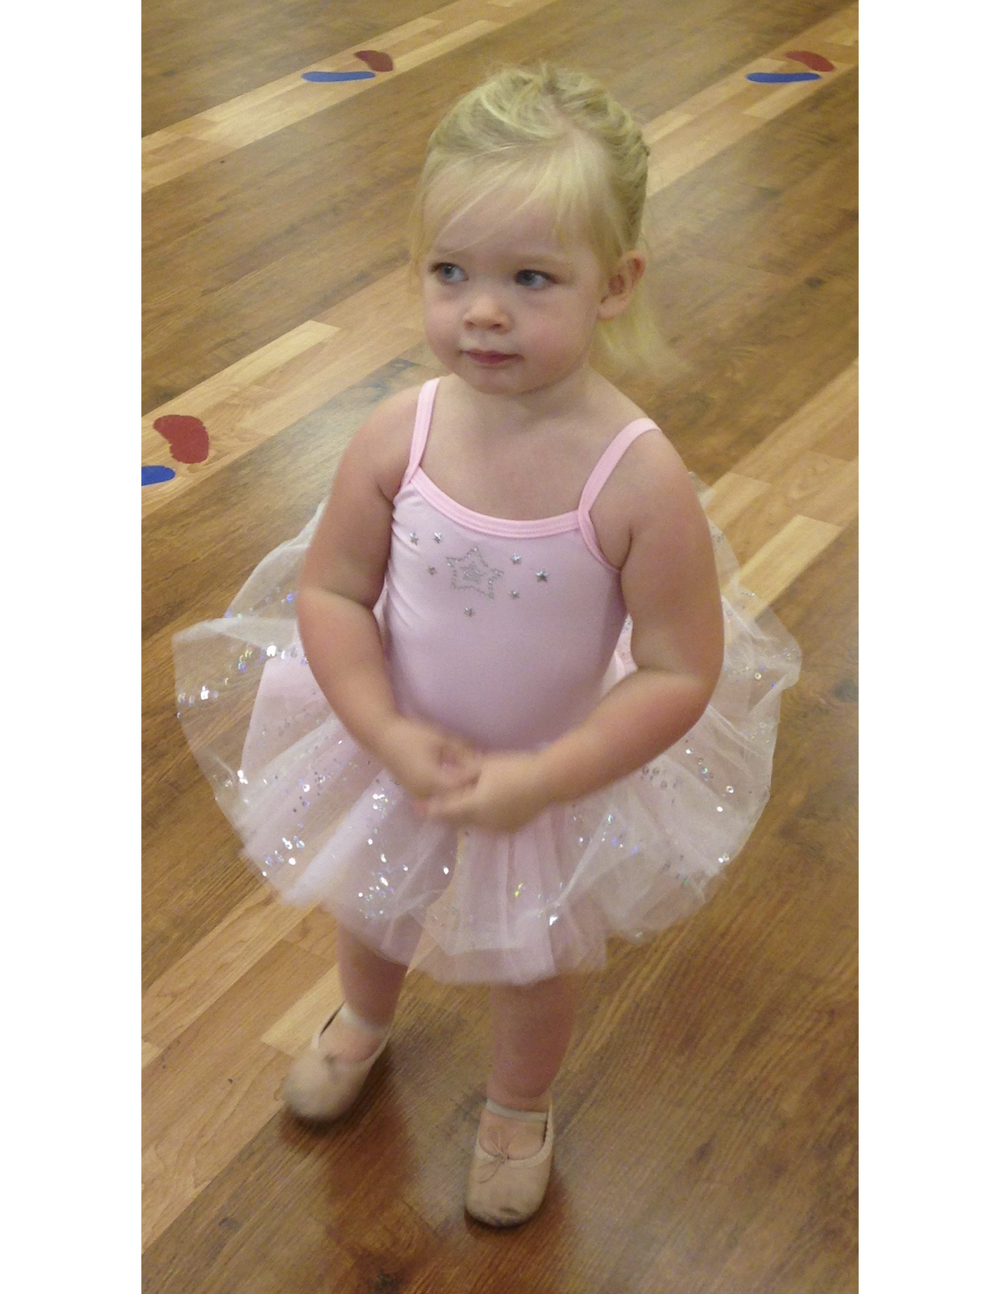 Check out this tiny ballerina in her sparkly tutu and ballet shoes!